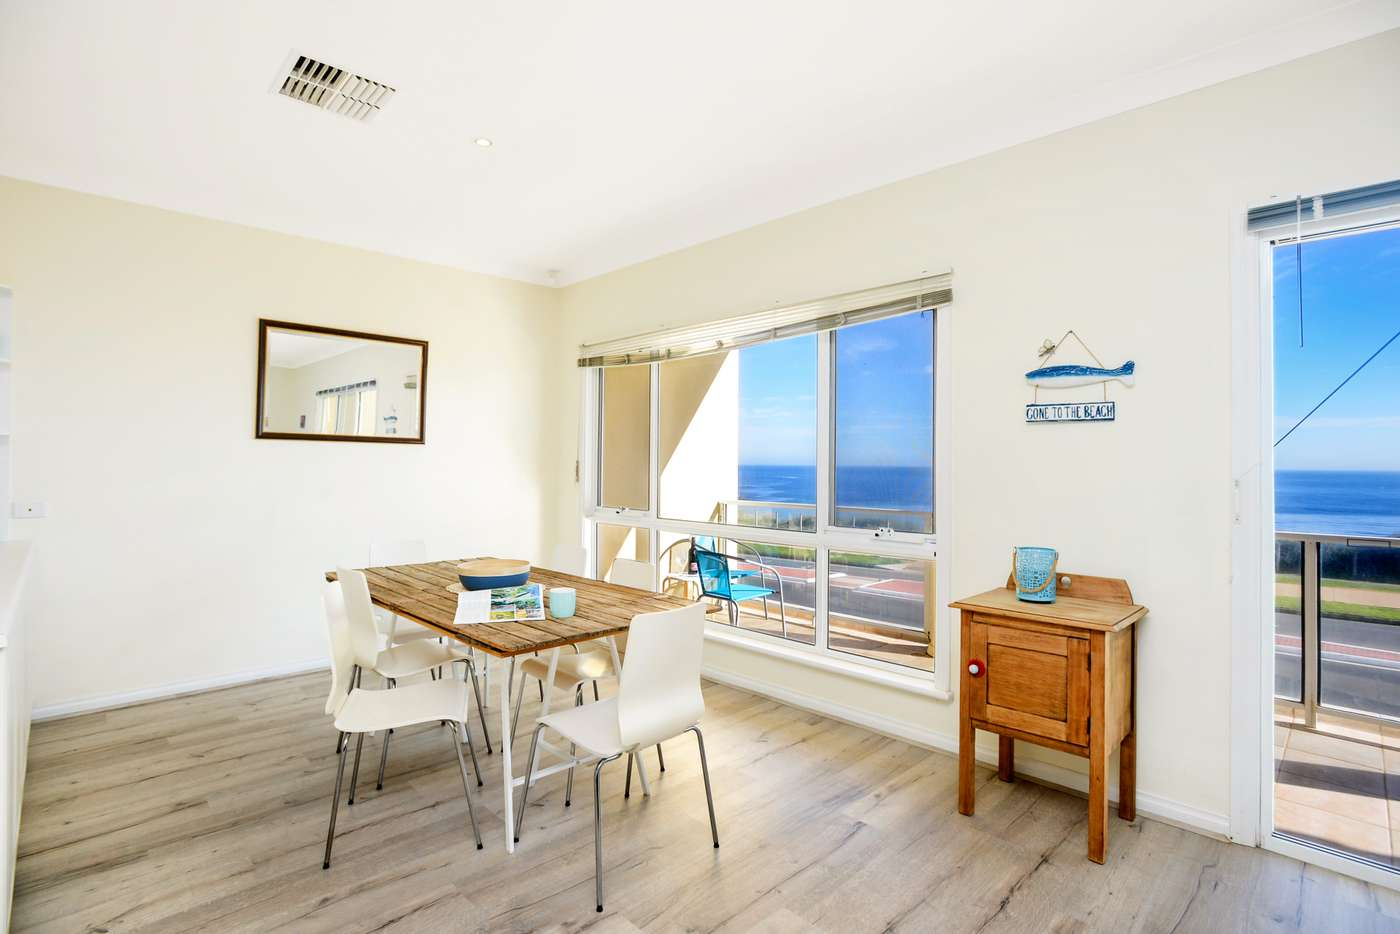 Seventh view of Homely house listing, 2/65 Esplanade, Aldinga Beach SA 5173